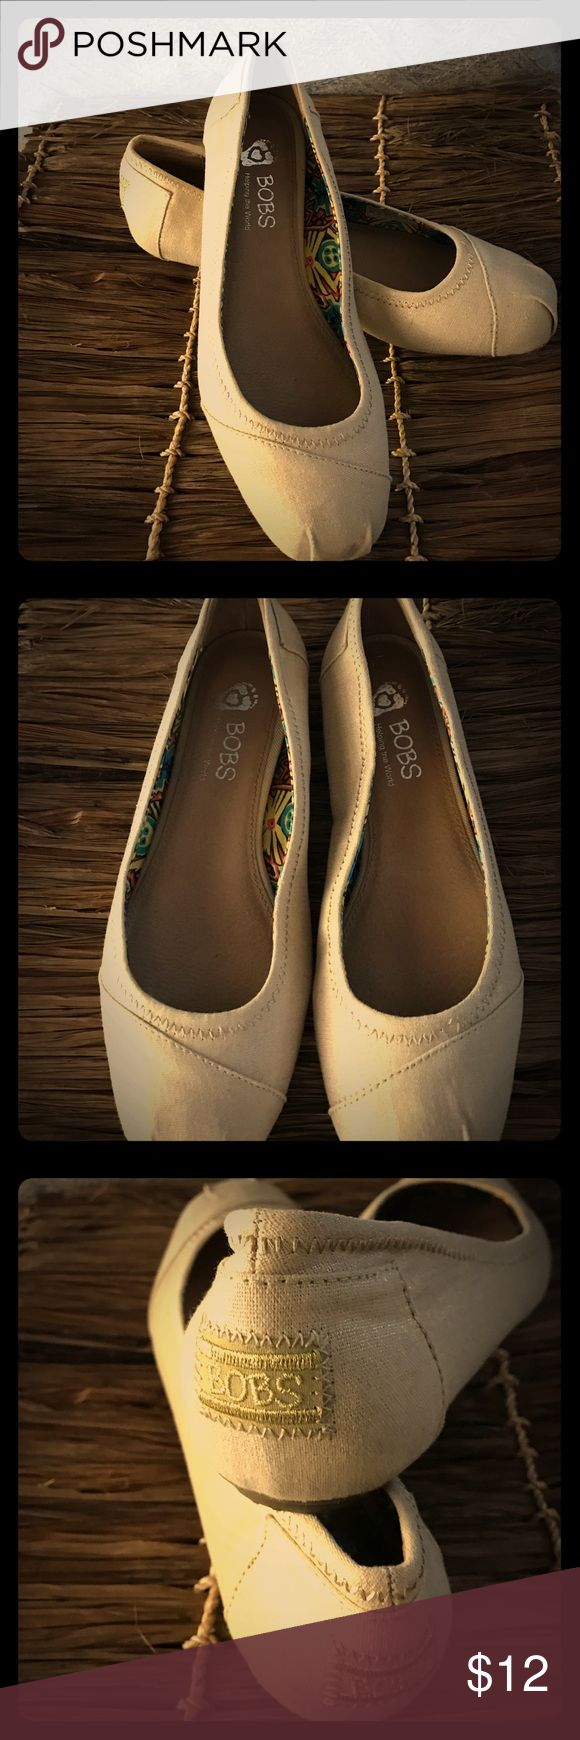 Gold and cream Sketcher Bob's shoes size 8.5 Very cute Bobs shoes cream and gold. Has a bit of gold shine to them. Ready for the summer. Skechers Shoes Flats & Loafers